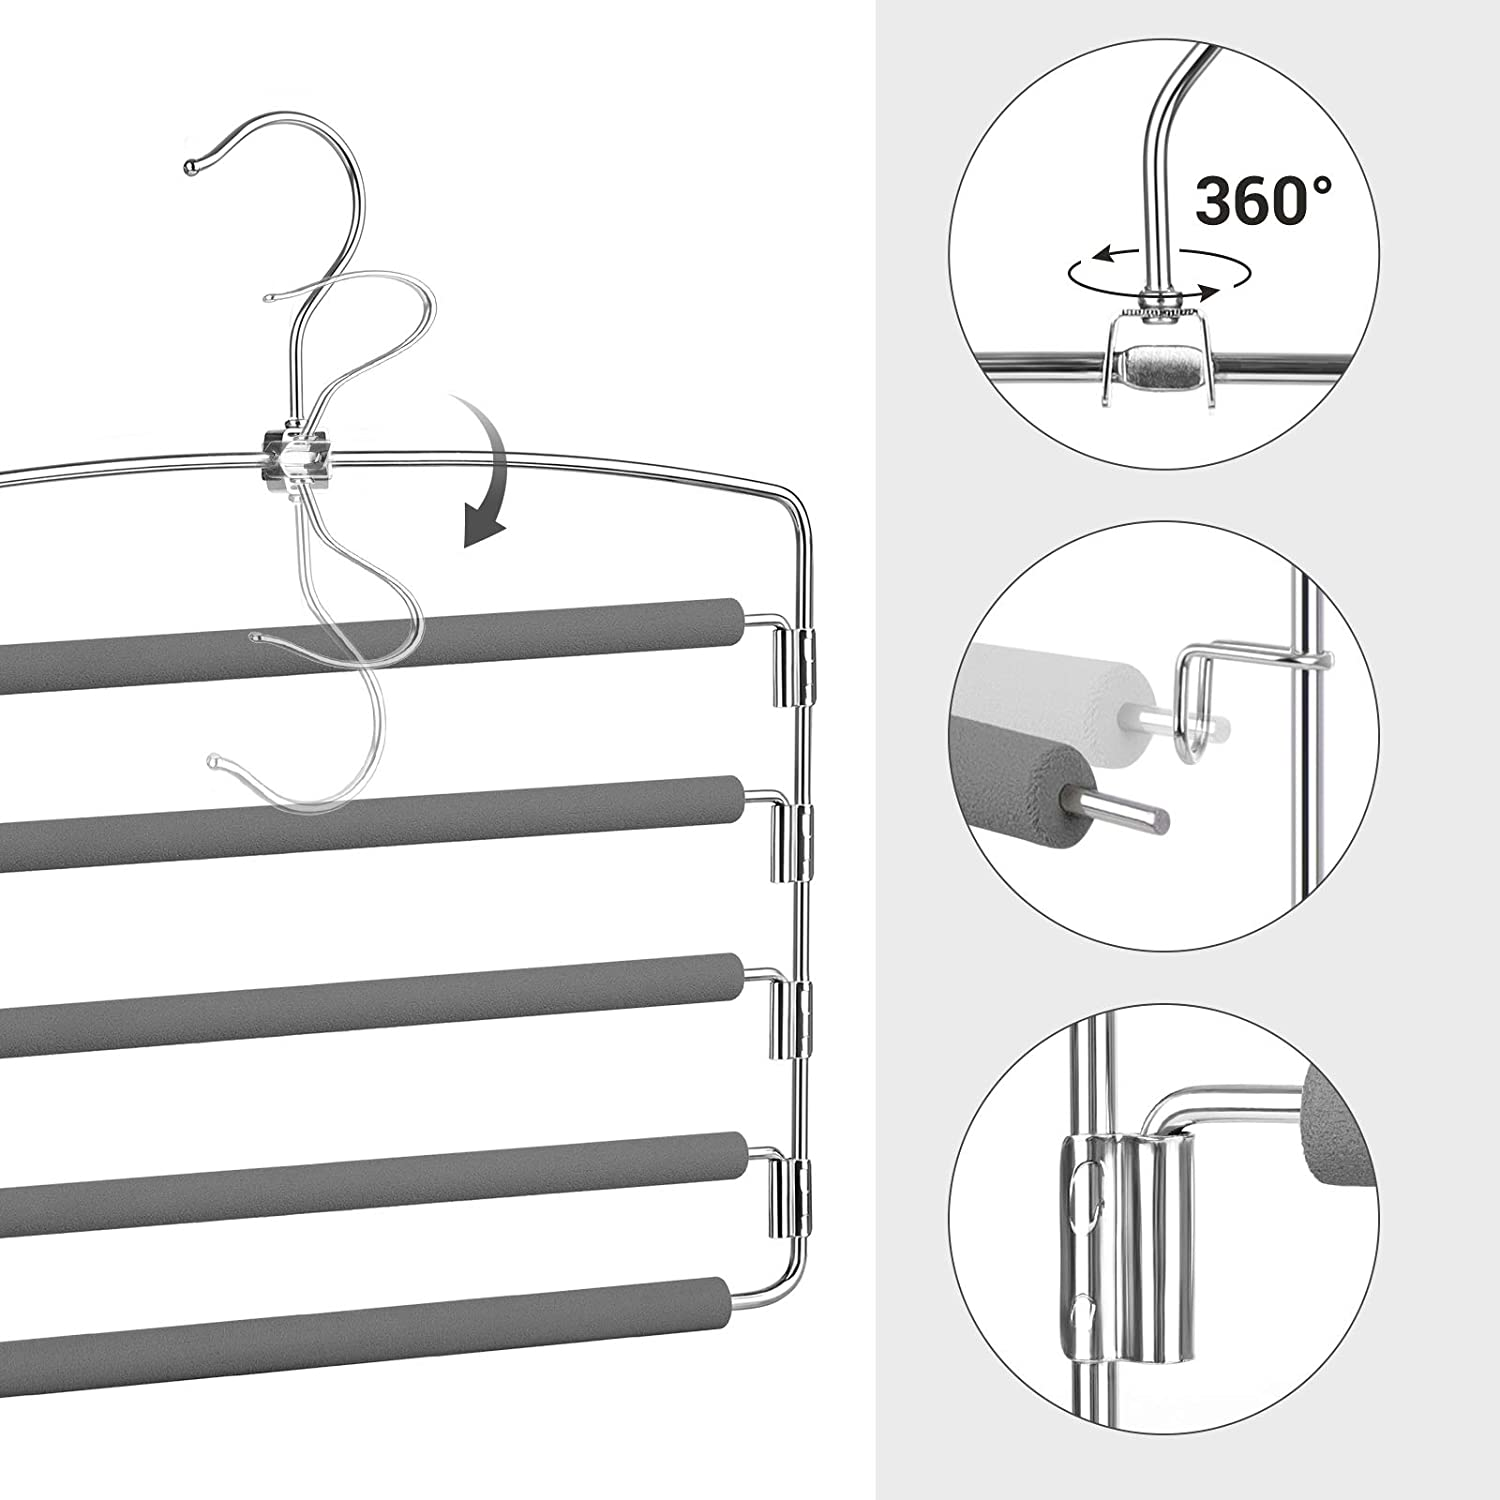 Set of 3 Space-Saving Multi-Bar Metal Pants Hangers Suit Pants Scarves Swing Arms for 5 Jeans Each Ties Silver and Pink UCRI041PK SONGMICS Trousers Hangers Stable with Non-Slip Padding